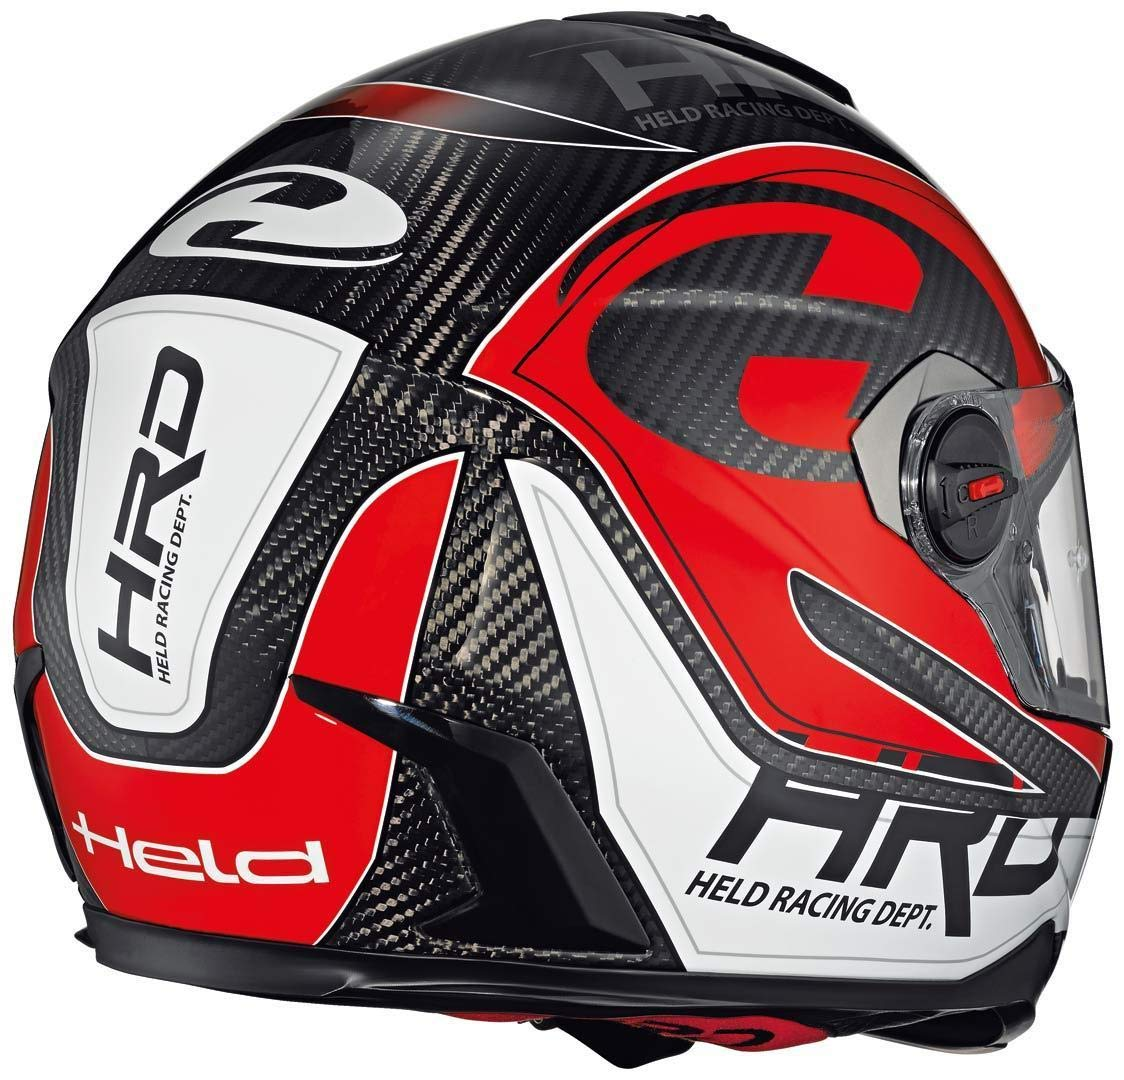 Held MASUDA Carbon Casco Integral negro Talla:extra-large: Amazon.es: Deportes y aire libre